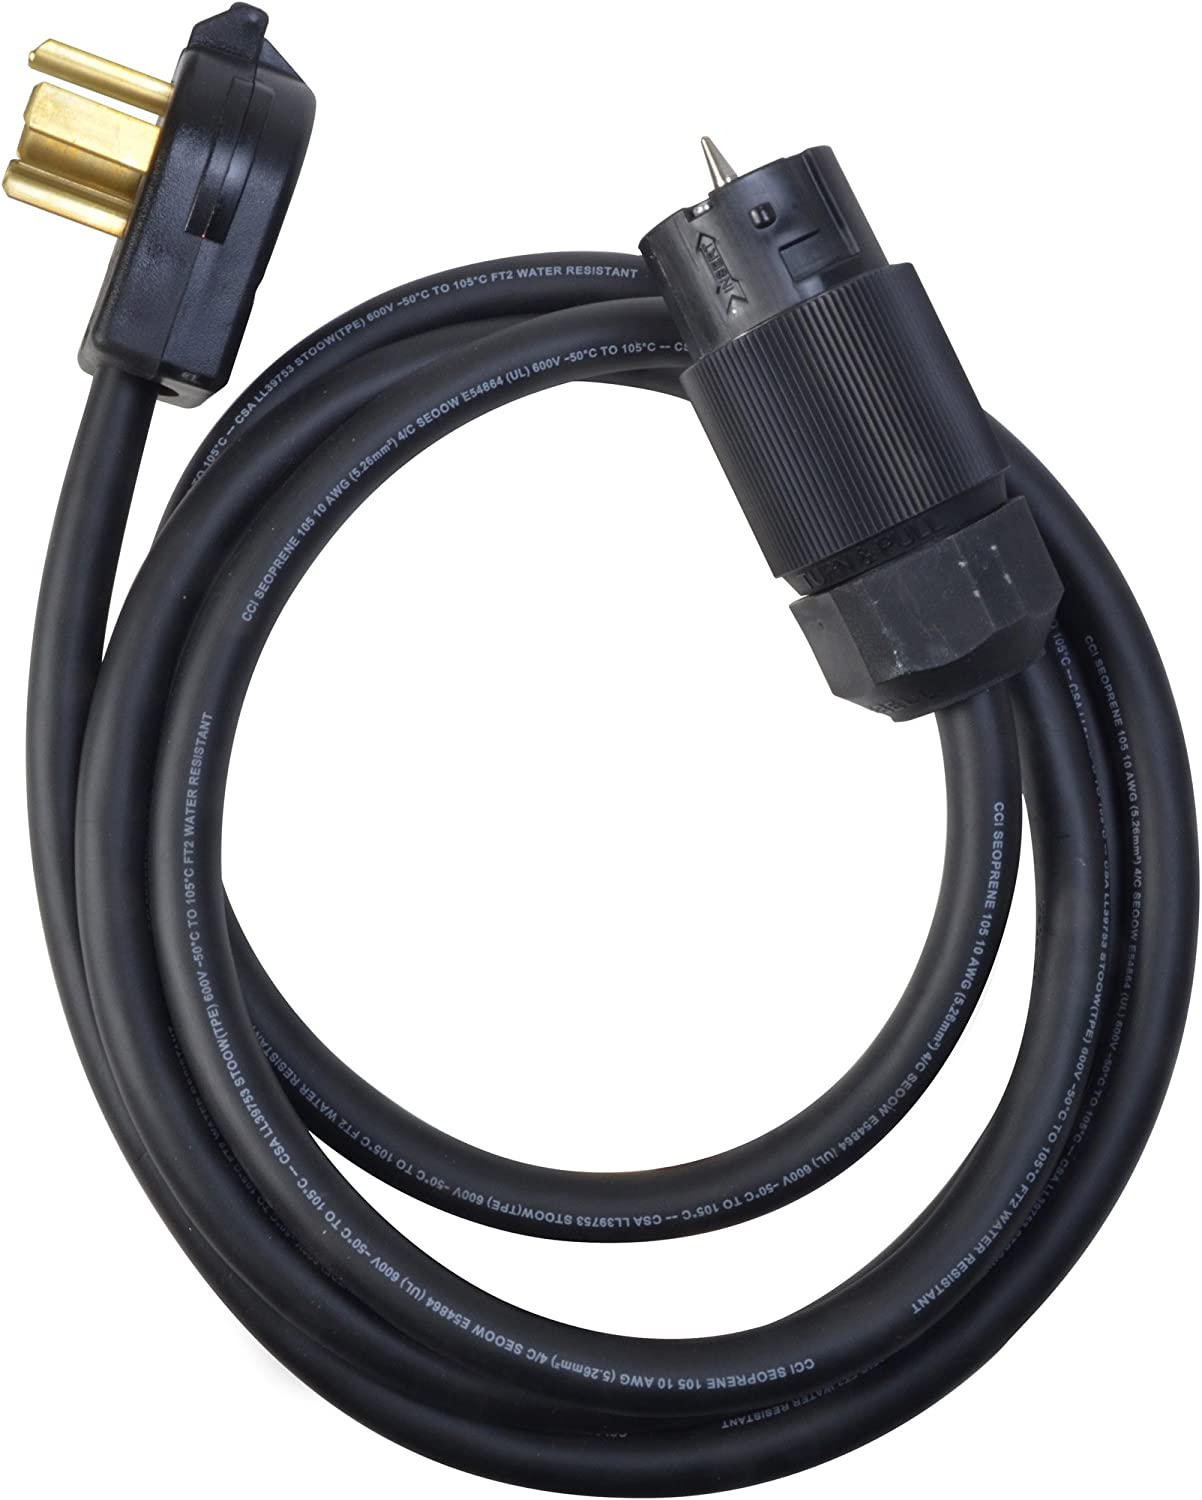 Coleman Cable Price reduction 01824 Power Cord Distribution Extension Oklahoma City Mall Generator